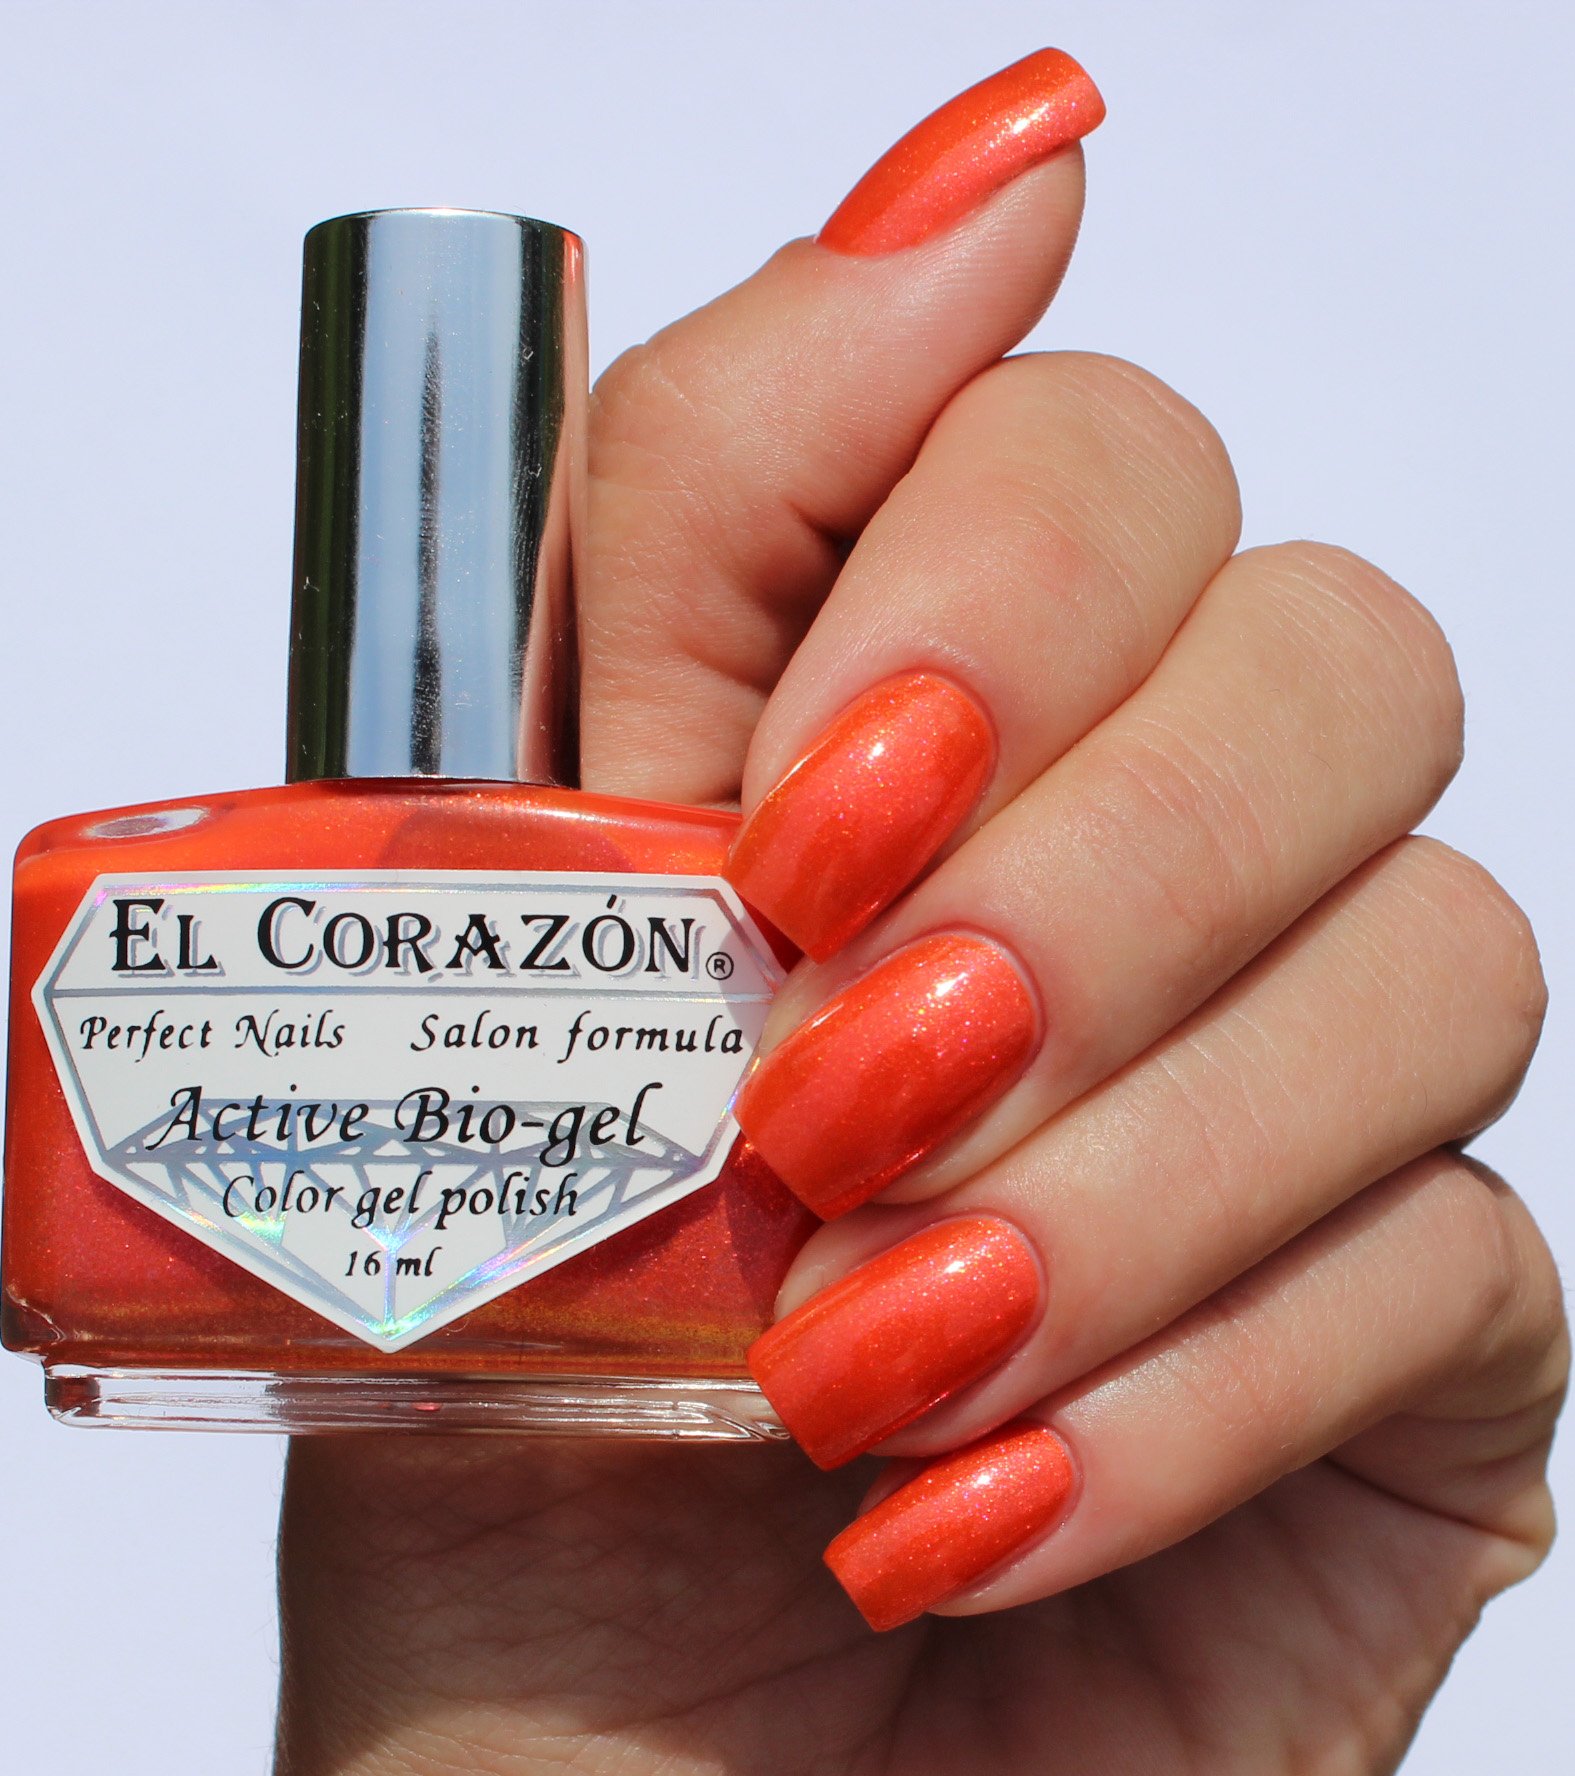 EL Corazon Active Bio-gel Color gel polish Magic №423/561 Magic tail kamet